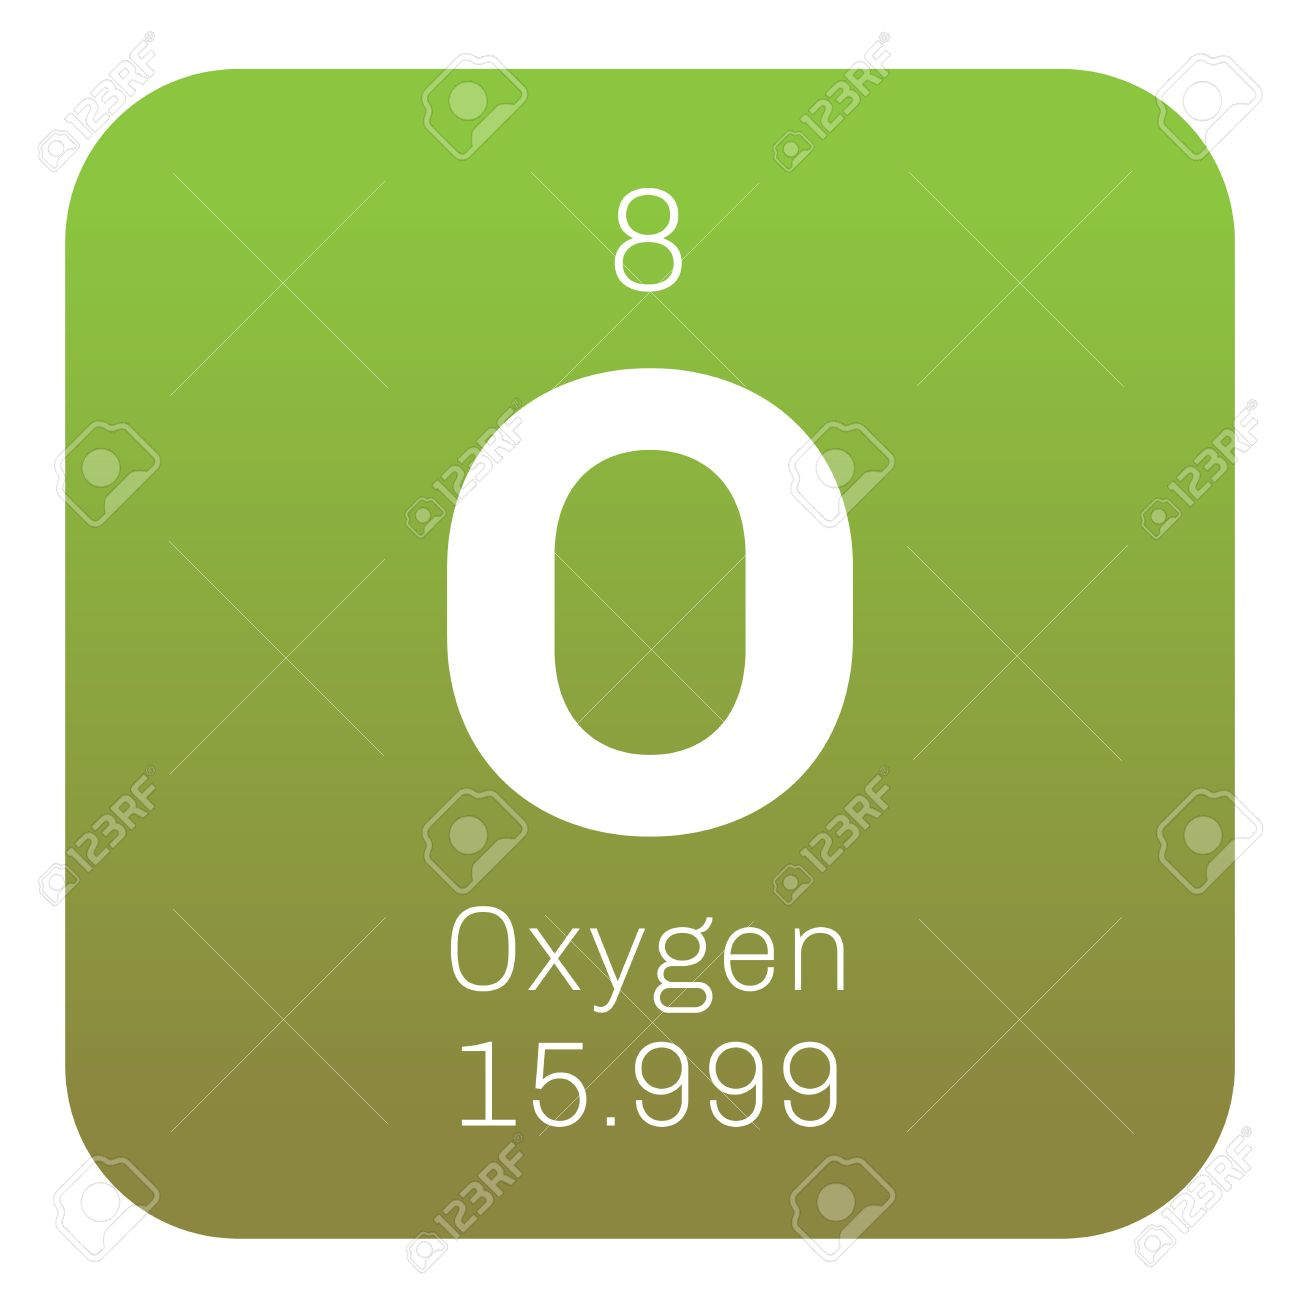 Oxygen chemical element highly reactive nonmetal and oxidizing oxygen chemical element highly reactive nonmetal and oxidizing agent colored icon with atomic number buycottarizona Image collections